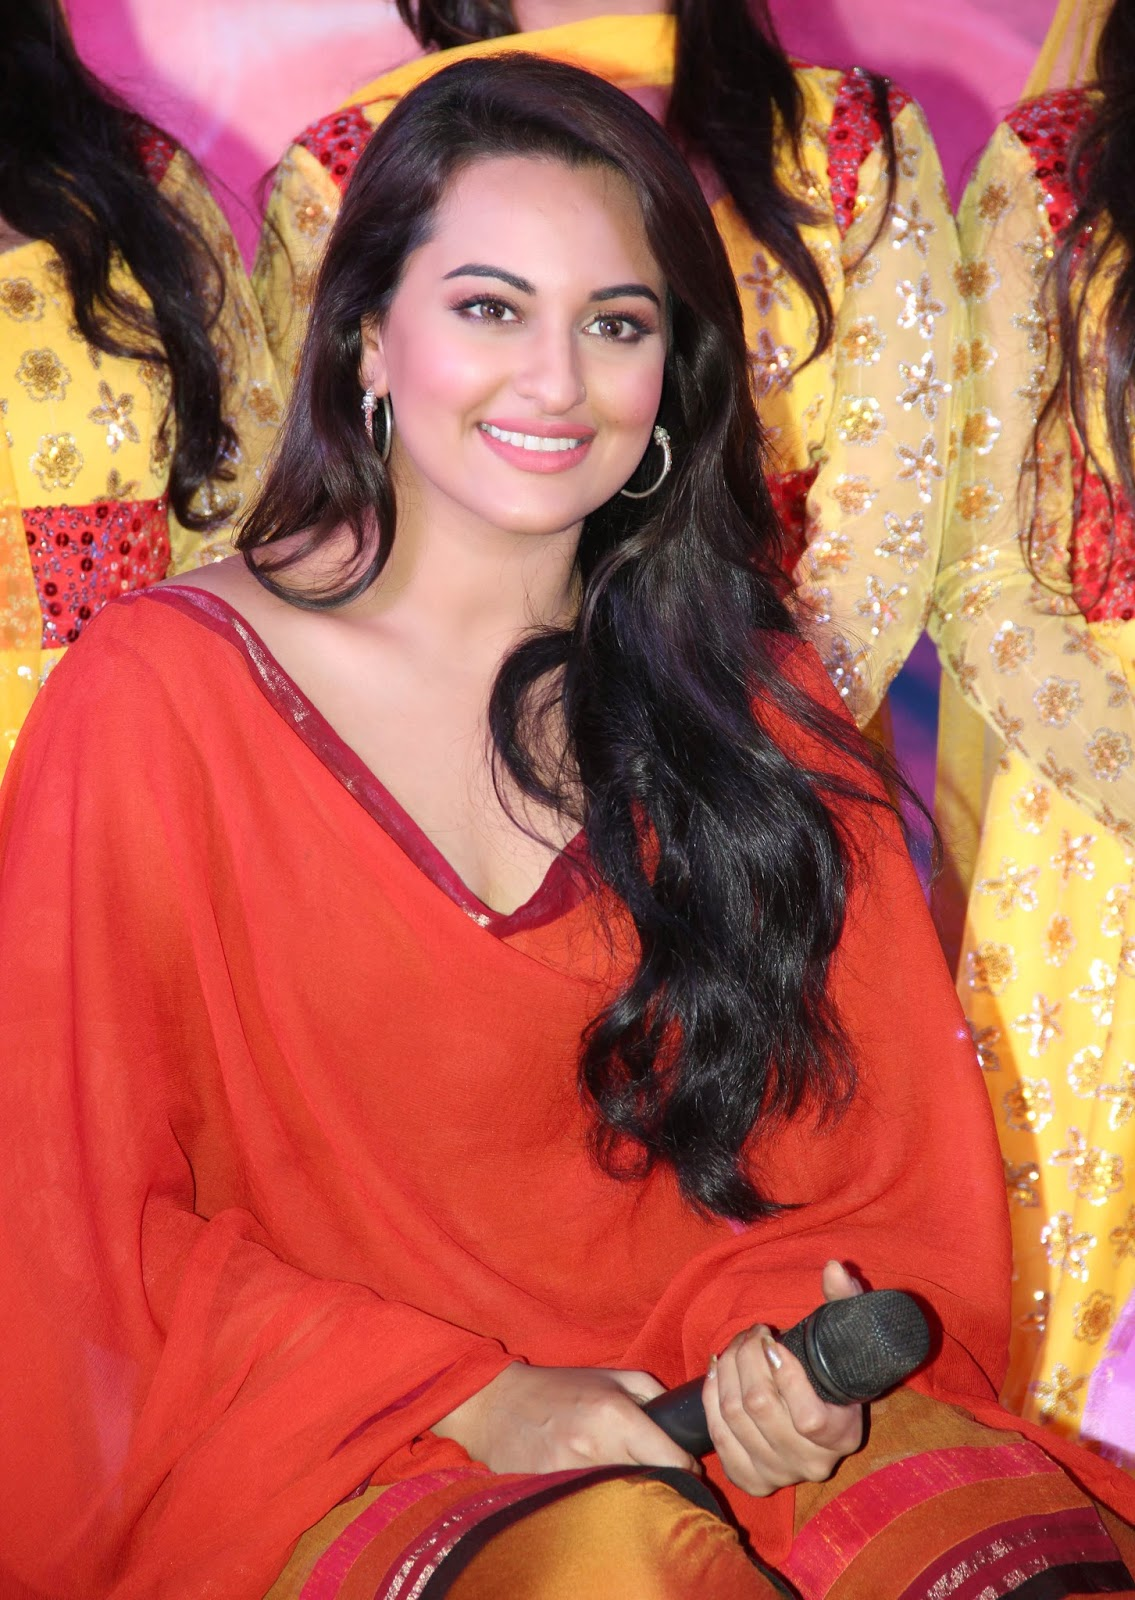 Sonakshi Sinha Spicy Stills In Colorful Red Dress